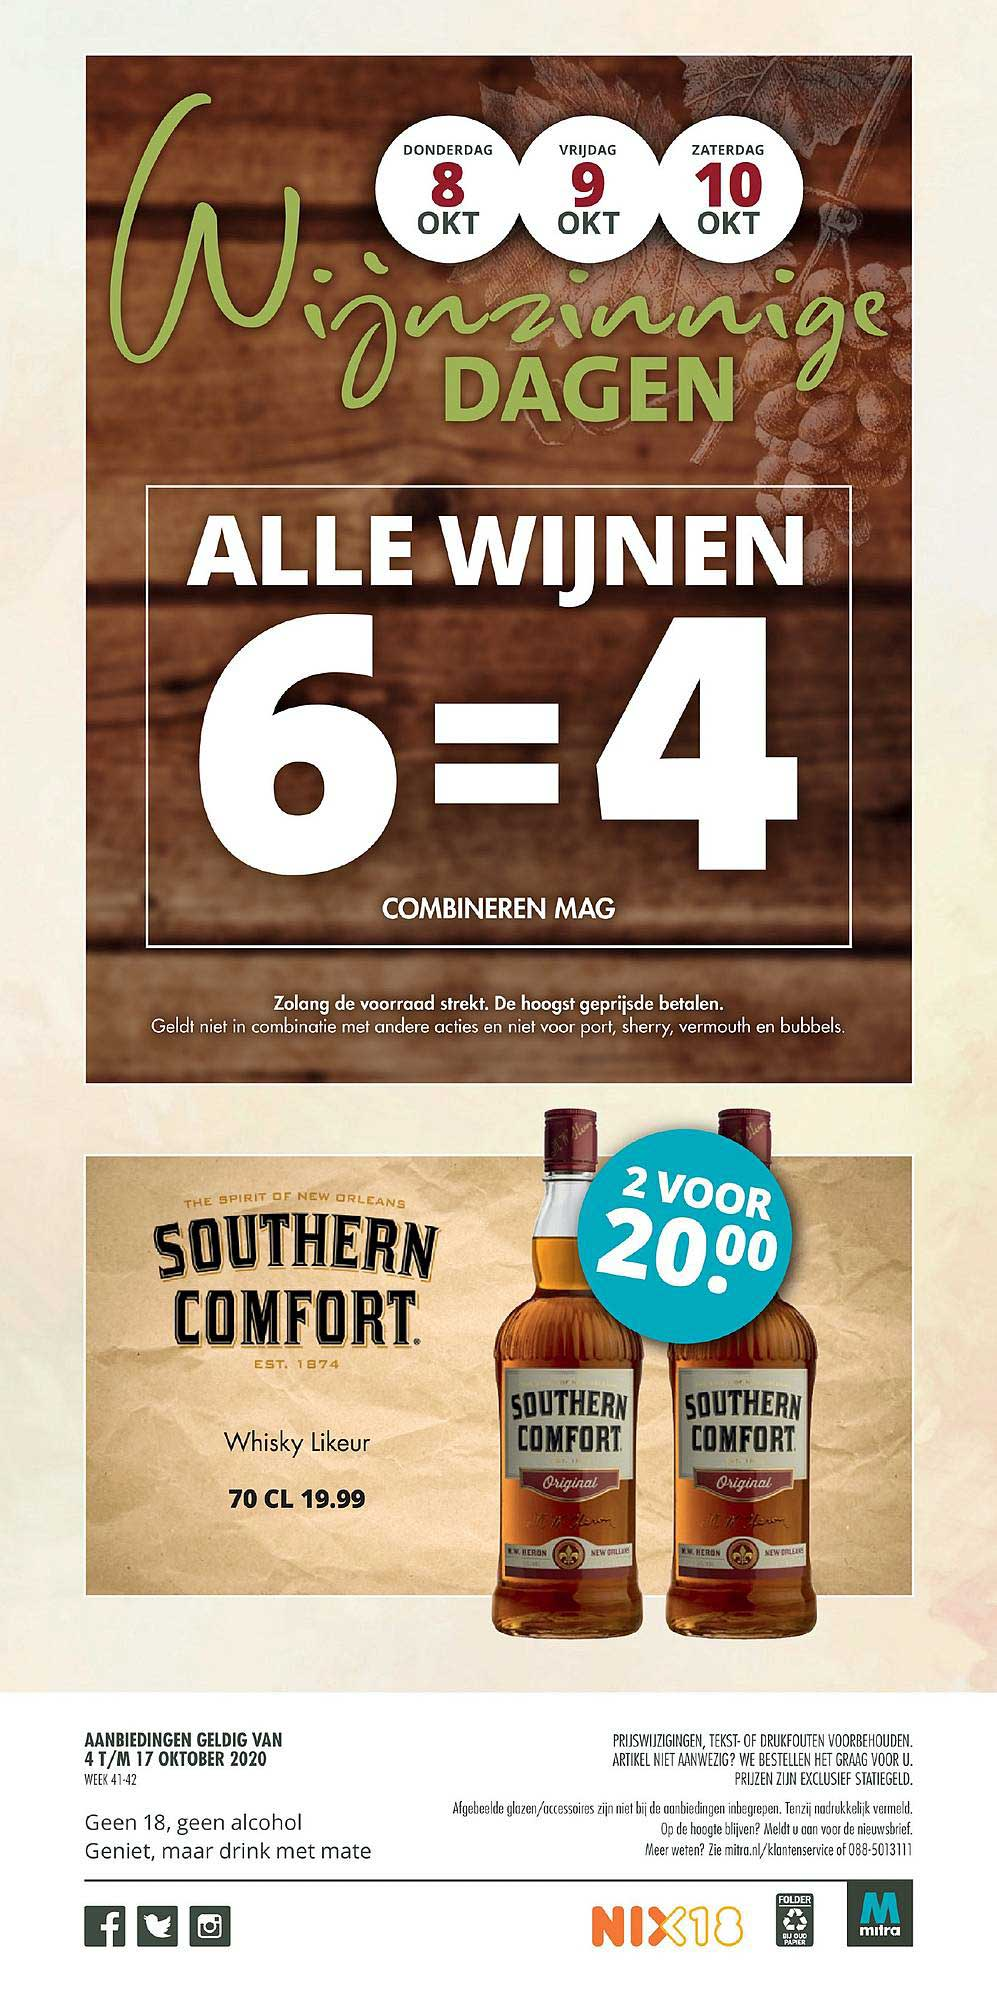 Mitra Southern Comfort Whisky Likeur